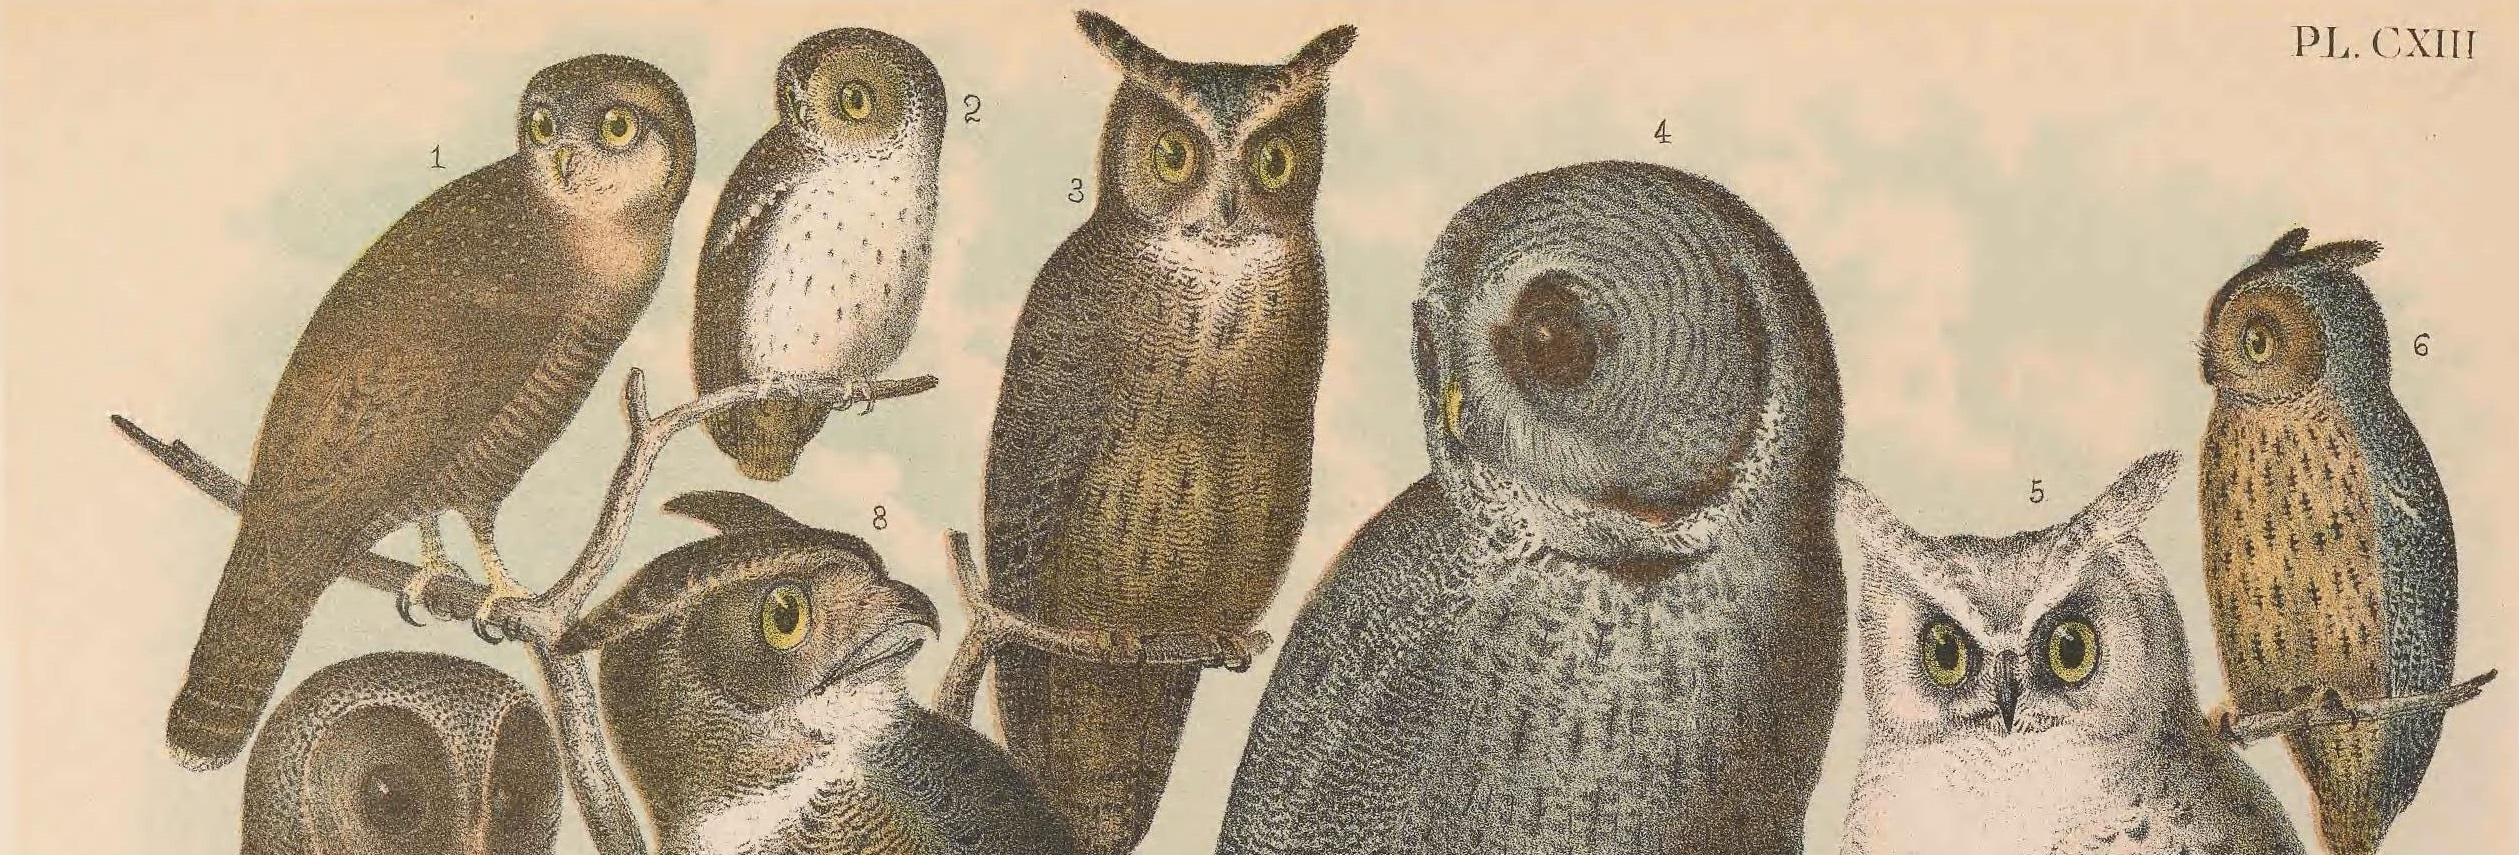 Detail from Birds of North America, 1903 - Biodiversity Hertiage Library Flickr Collection